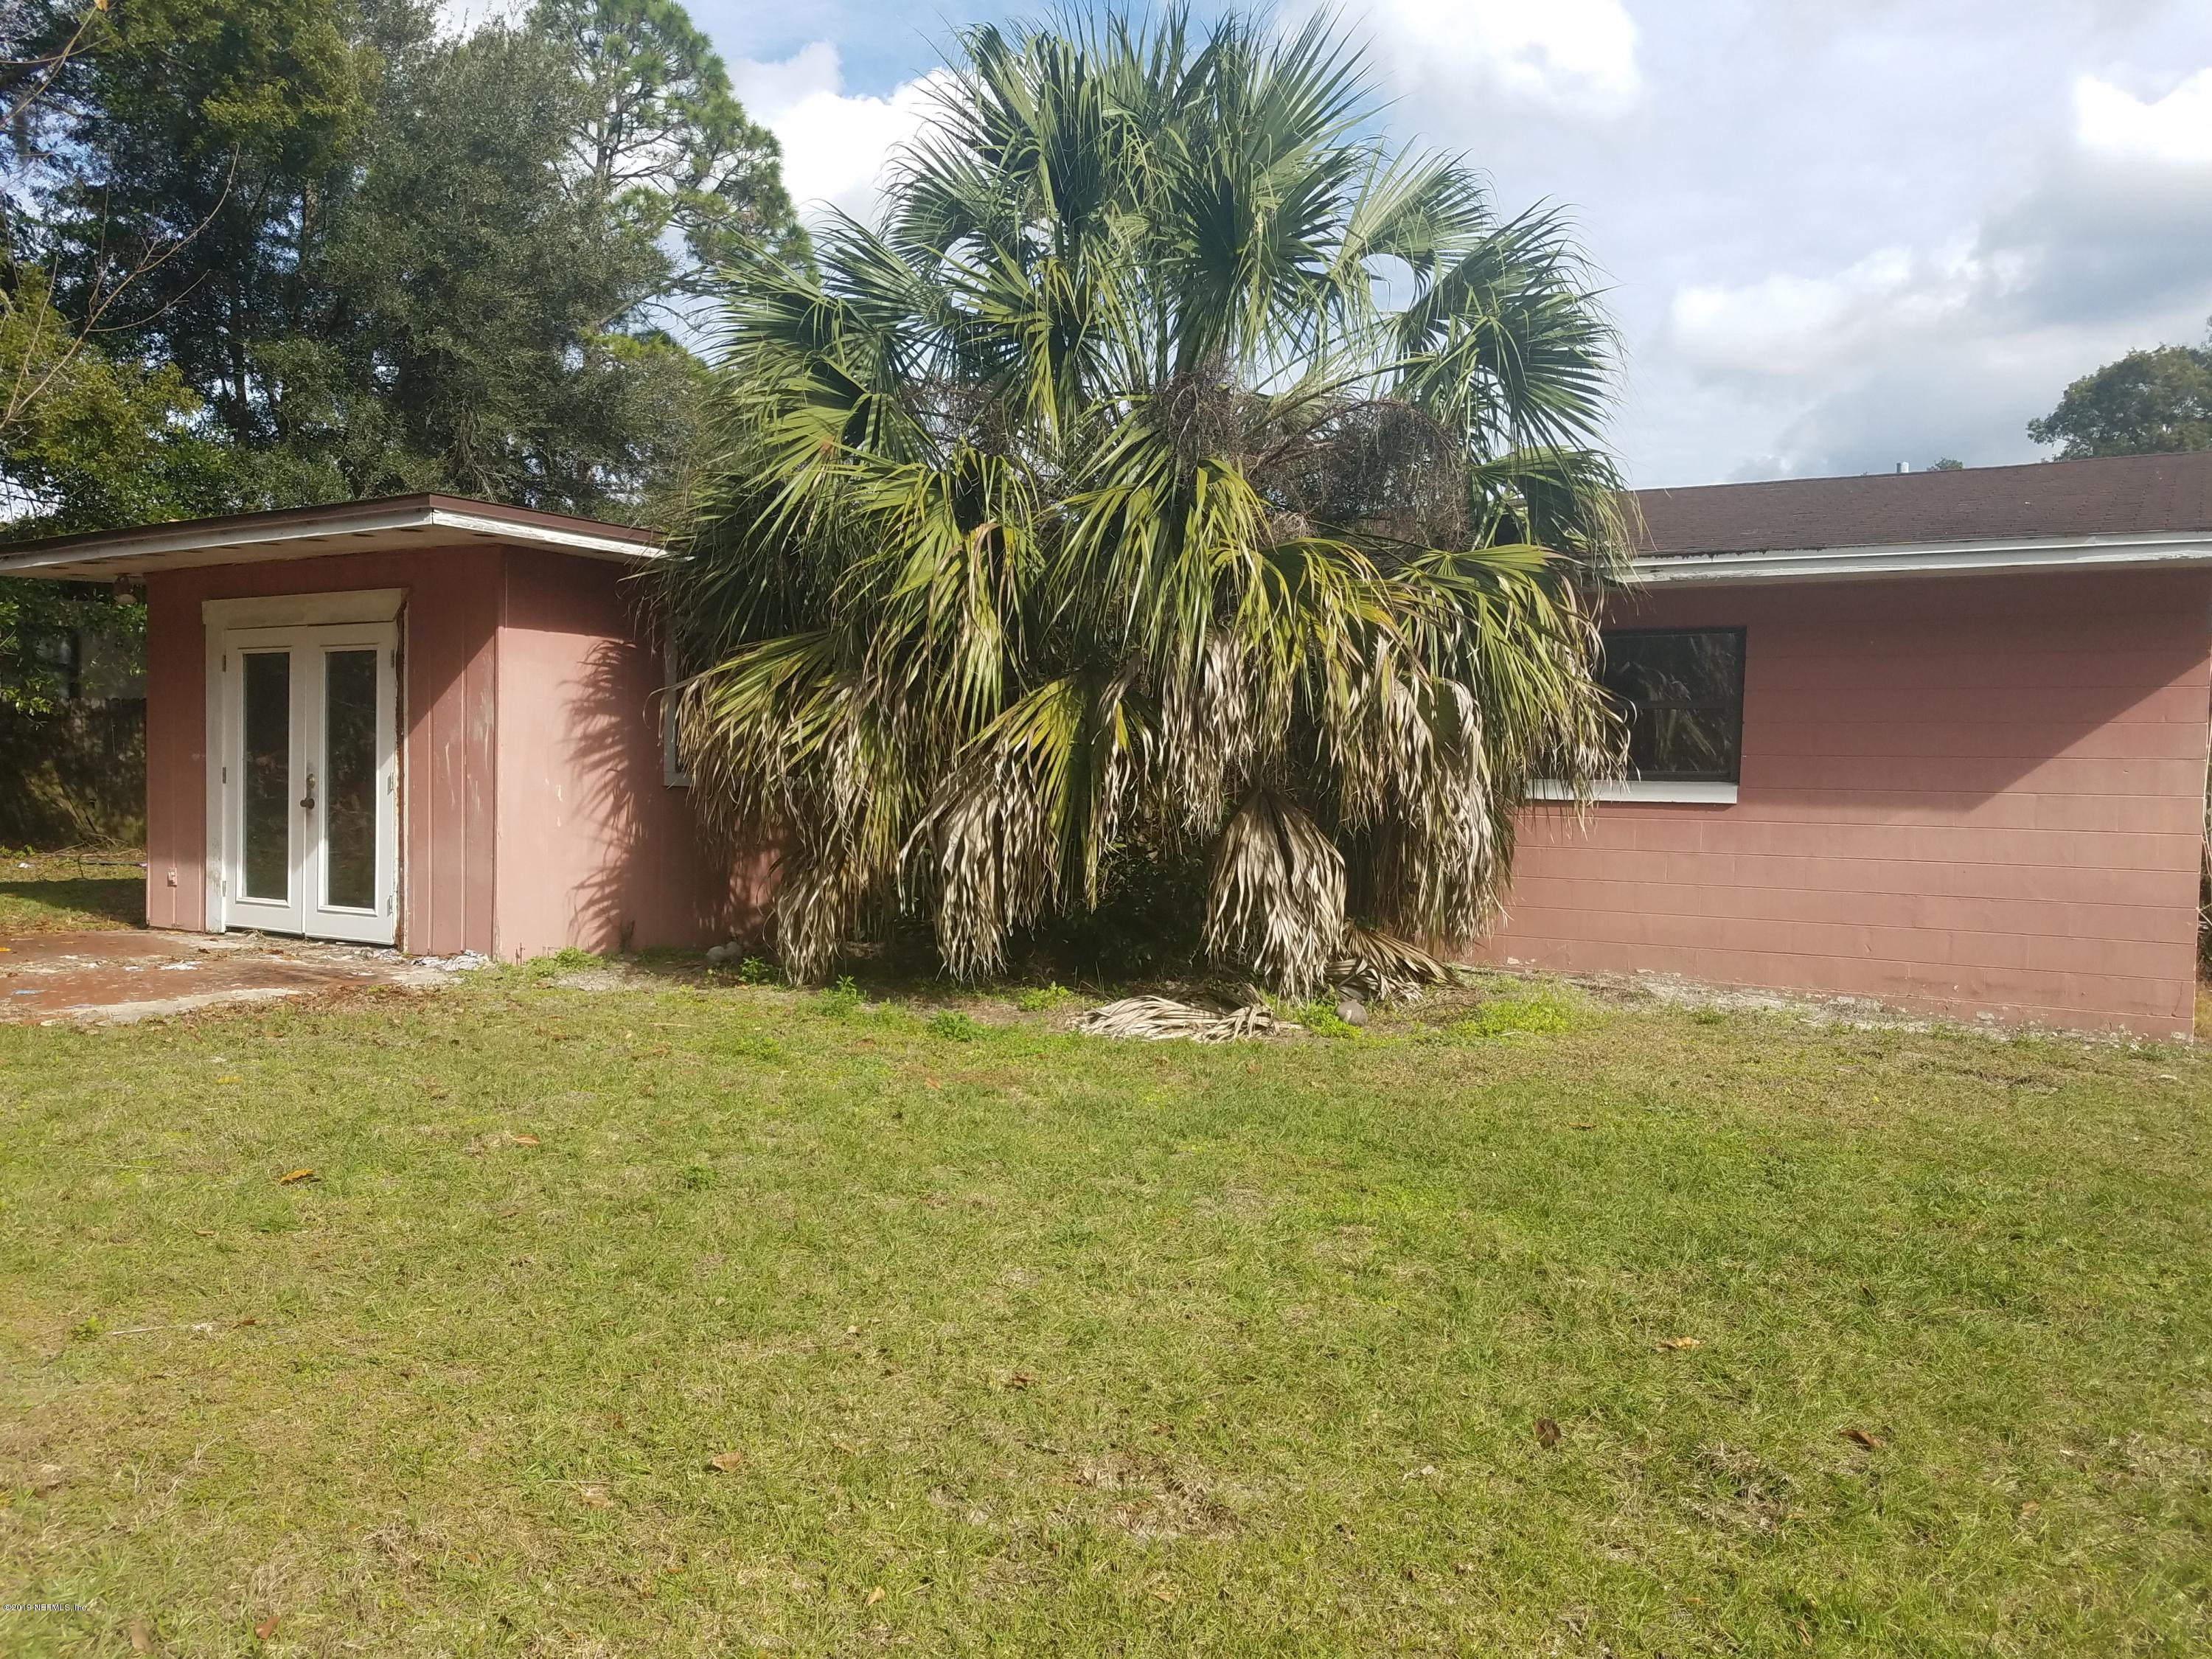 210 MIMOSA, PALATKA, FLORIDA 32177, 3 Bedrooms Bedrooms, ,2 BathroomsBathrooms,Residential - single family,For sale,MIMOSA,978943